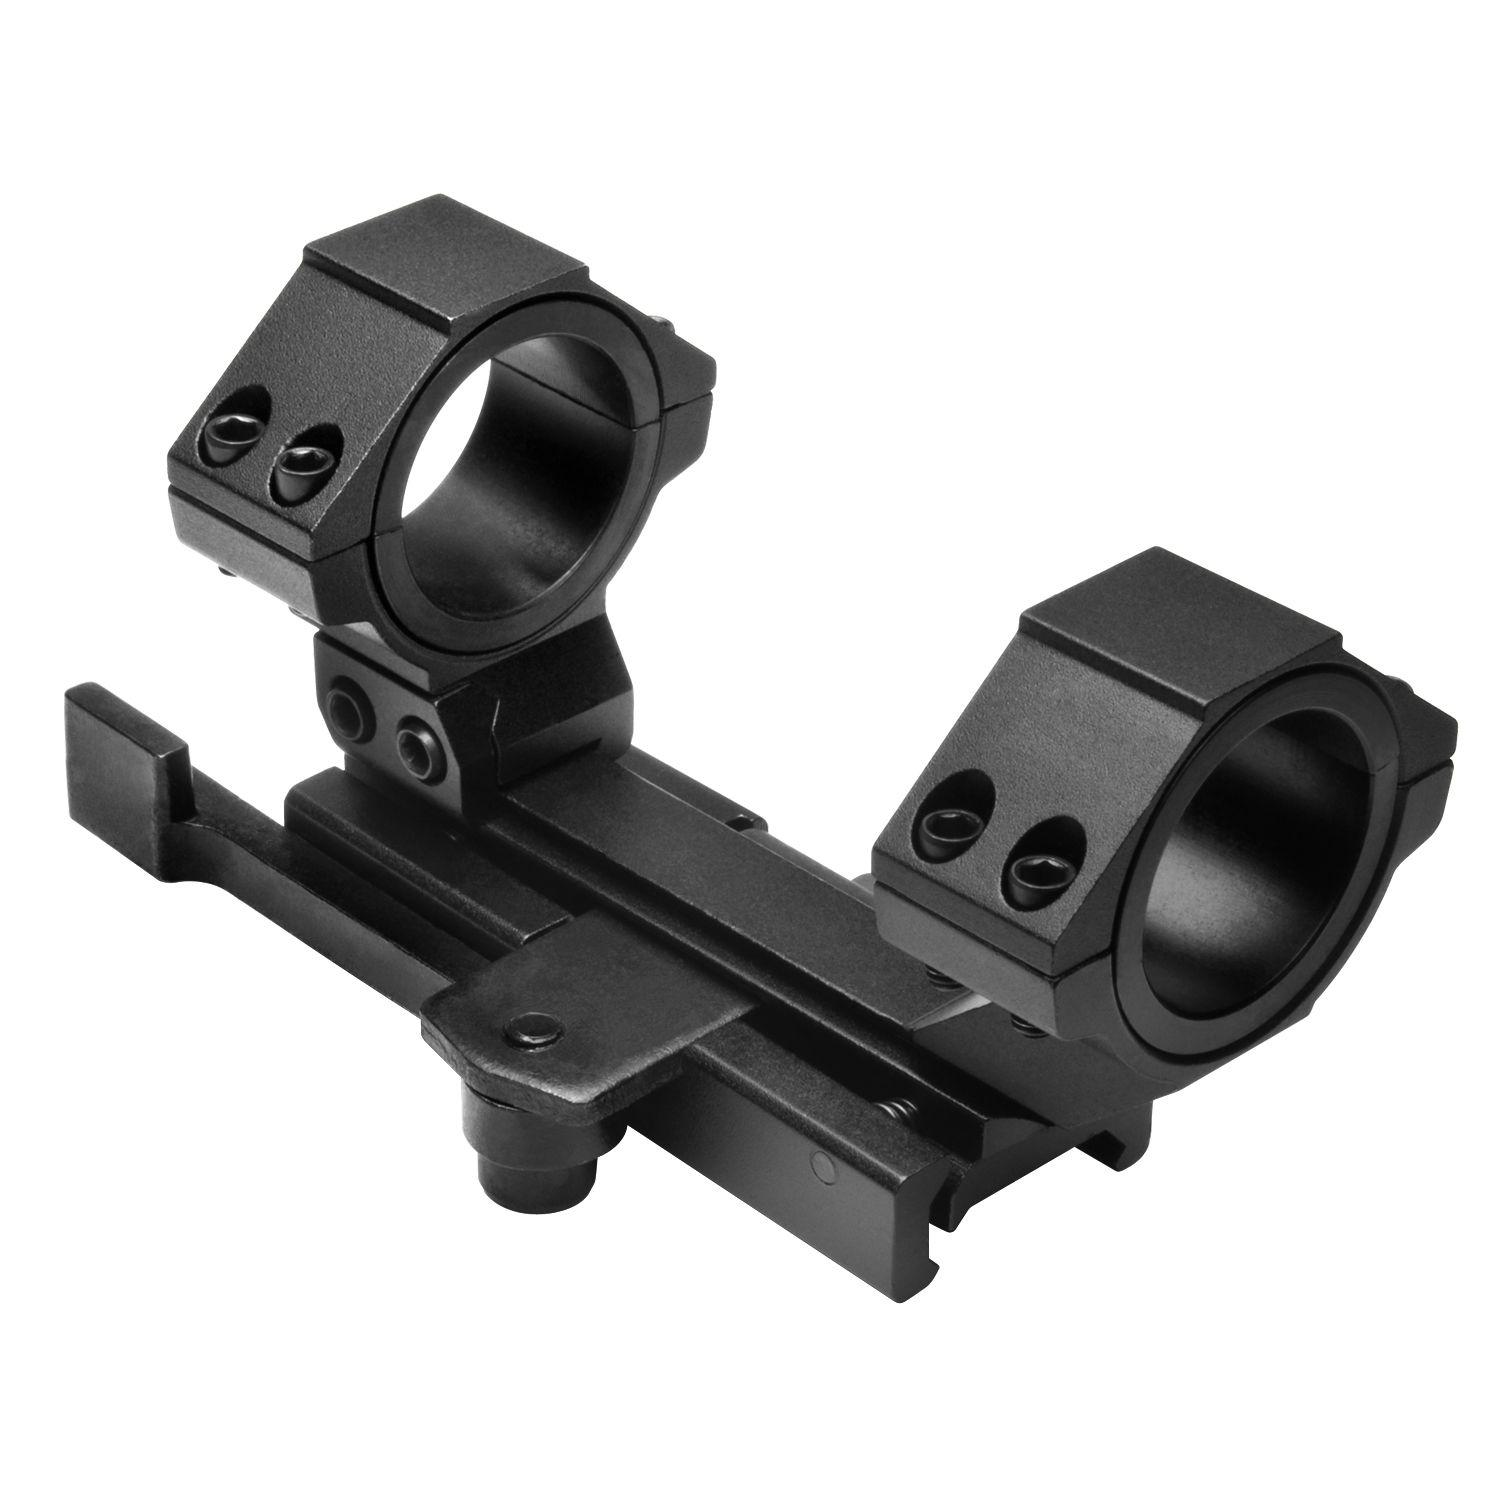 Ncstar AR-15 Quick Release Weaver Mount Cantilever Scope